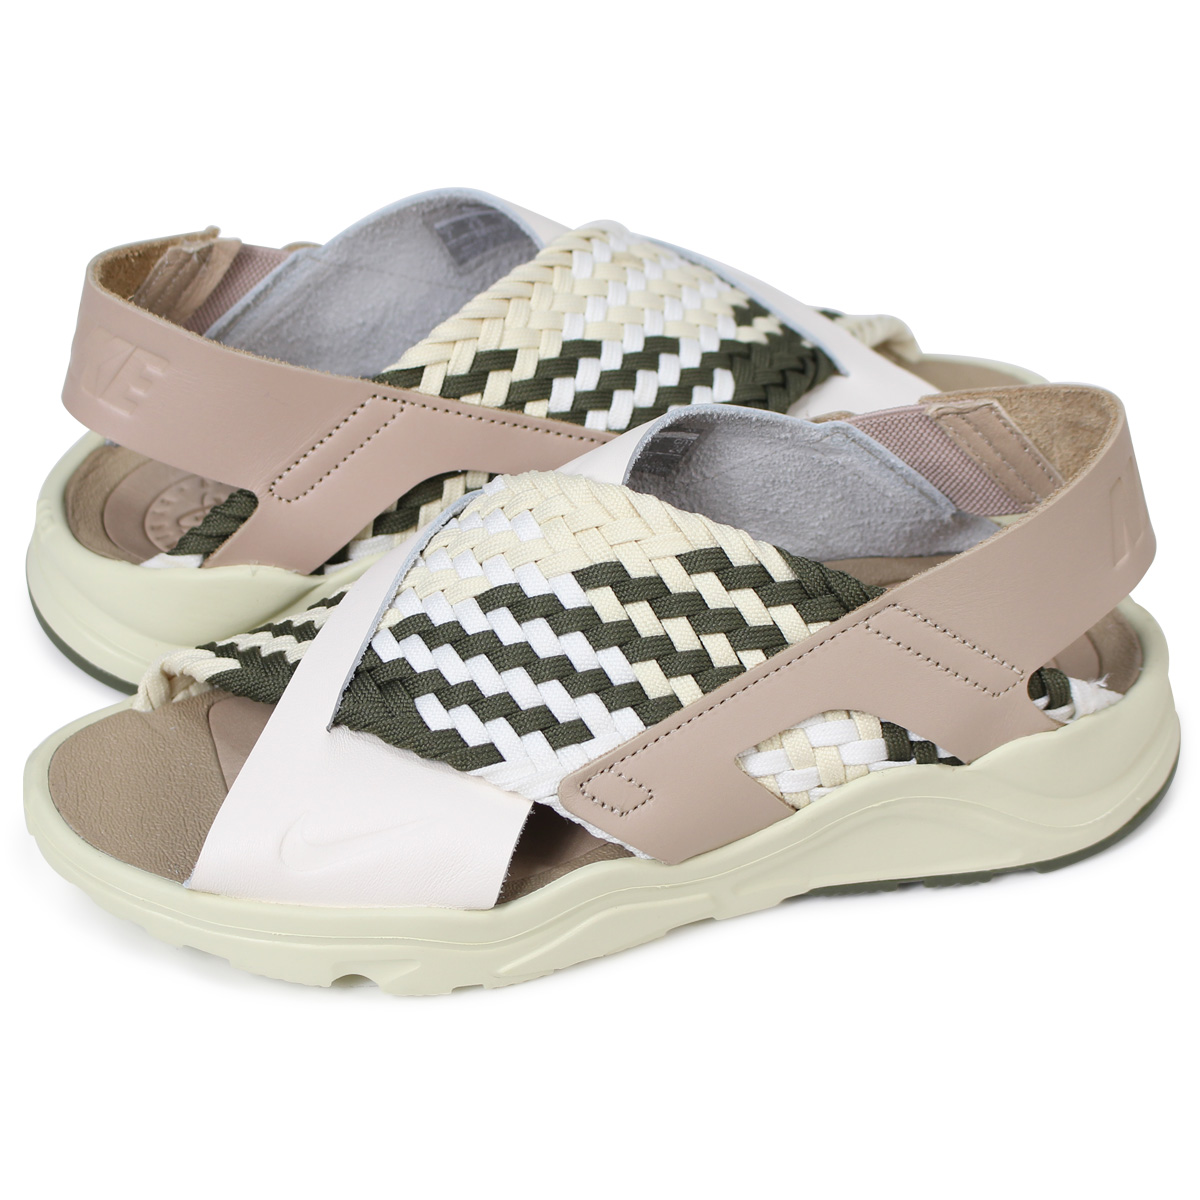 new concept 9b922 7077c NIKE WMNS AIR HUARACHE ULTRA ナイキエアハラチウルトラレディースサンダル 885,118-201 beige [load  planned Shinnyu load in reservation product 5/19 containing]